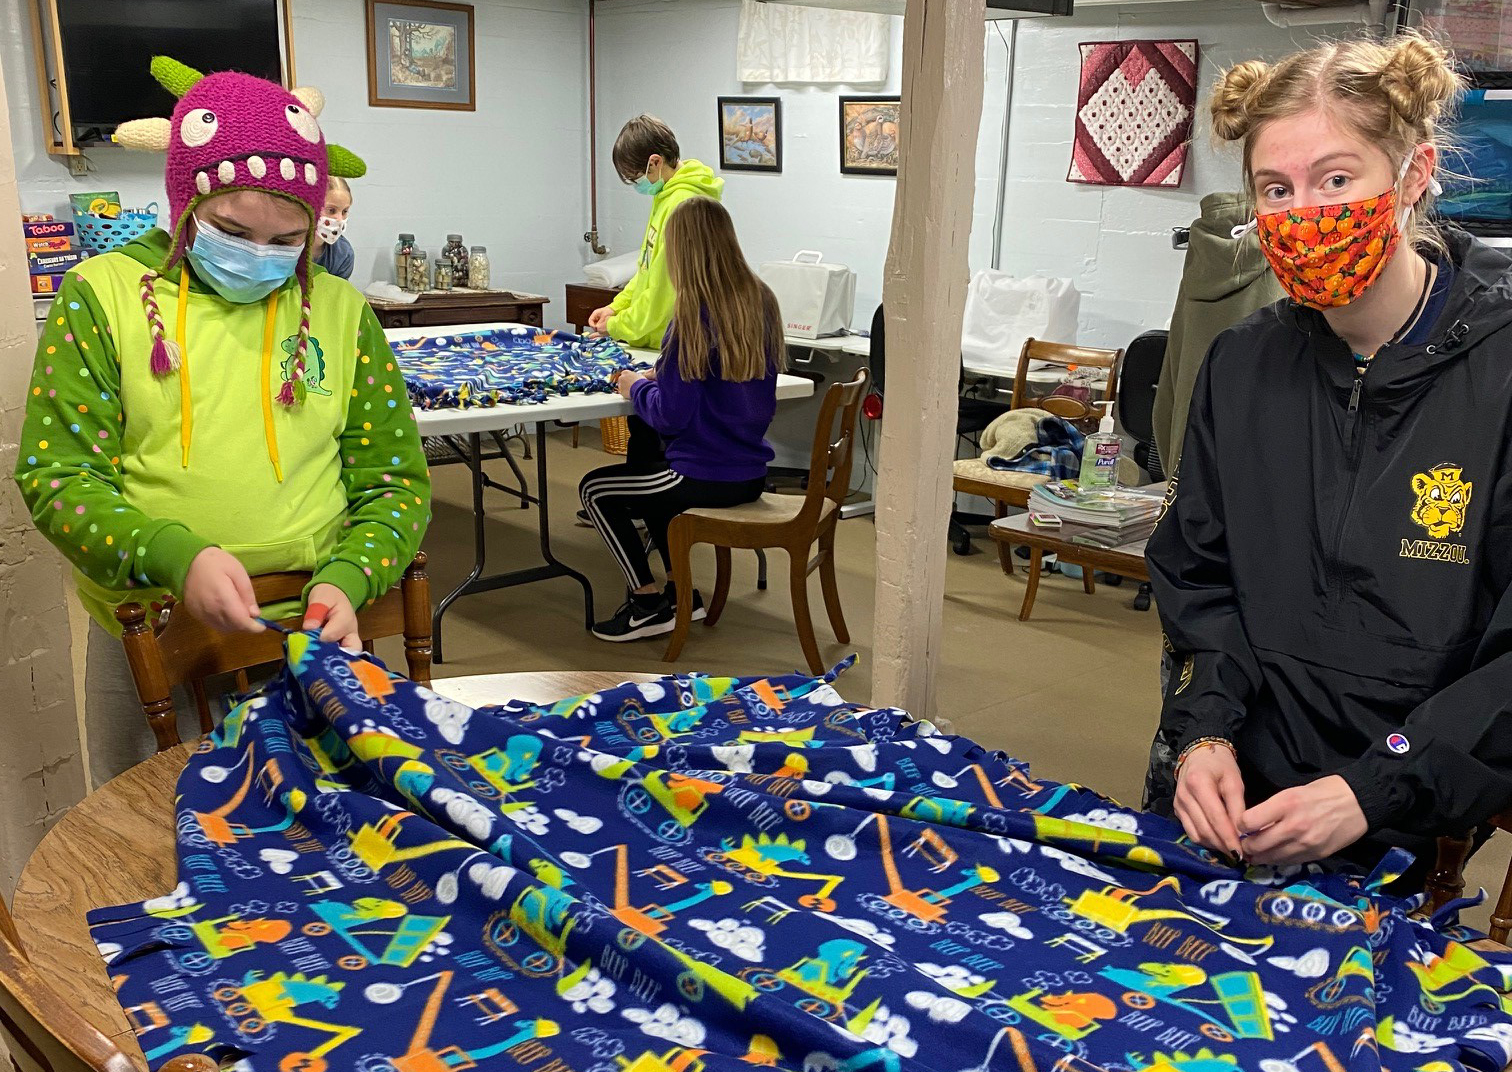 St. Charles County 4-H'ers Audrey Coletti, left, and Anna Bello. Club members and volunteers made 16 blankets for Project Linus.